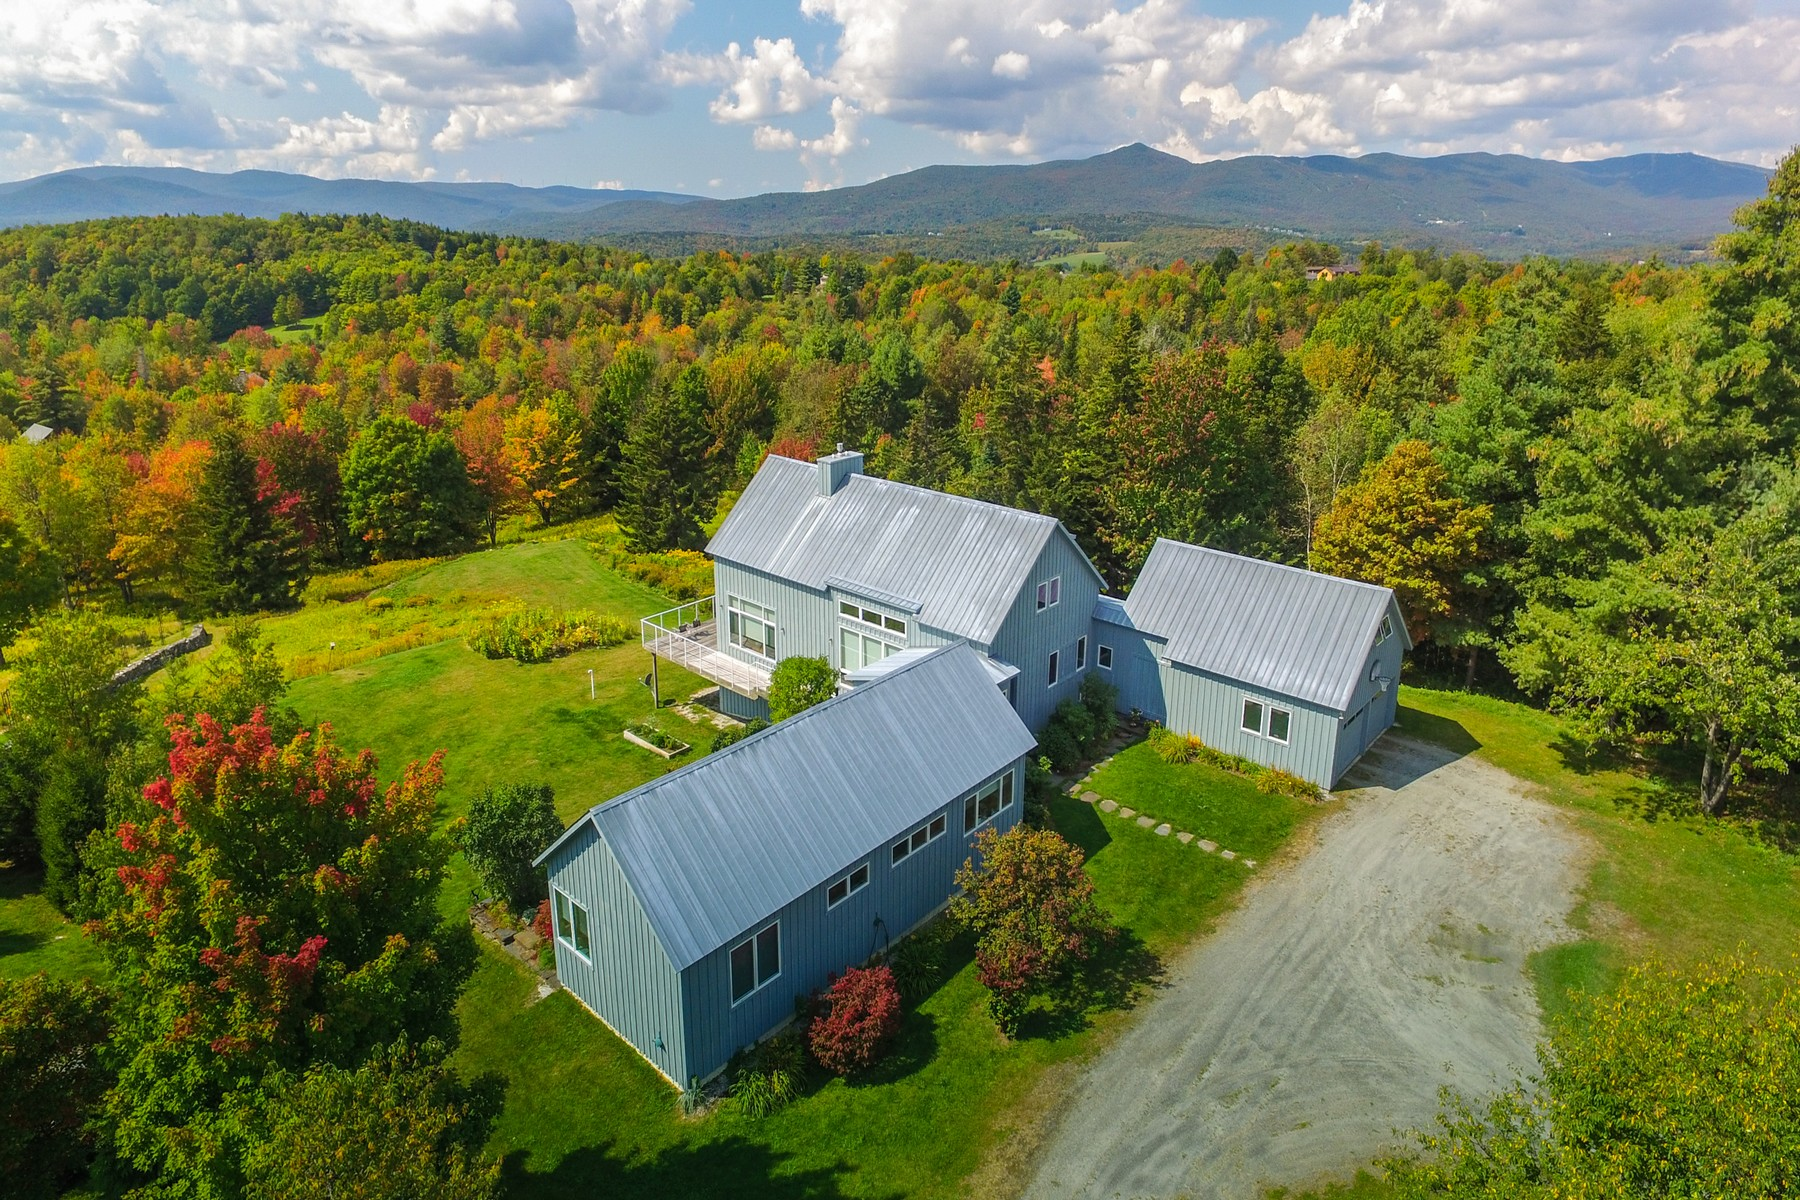 Single Family Home for Sale at 81 Top Of Hill, Wilmington 81 Top Of Hill Wilmington, Vermont 05363 United States